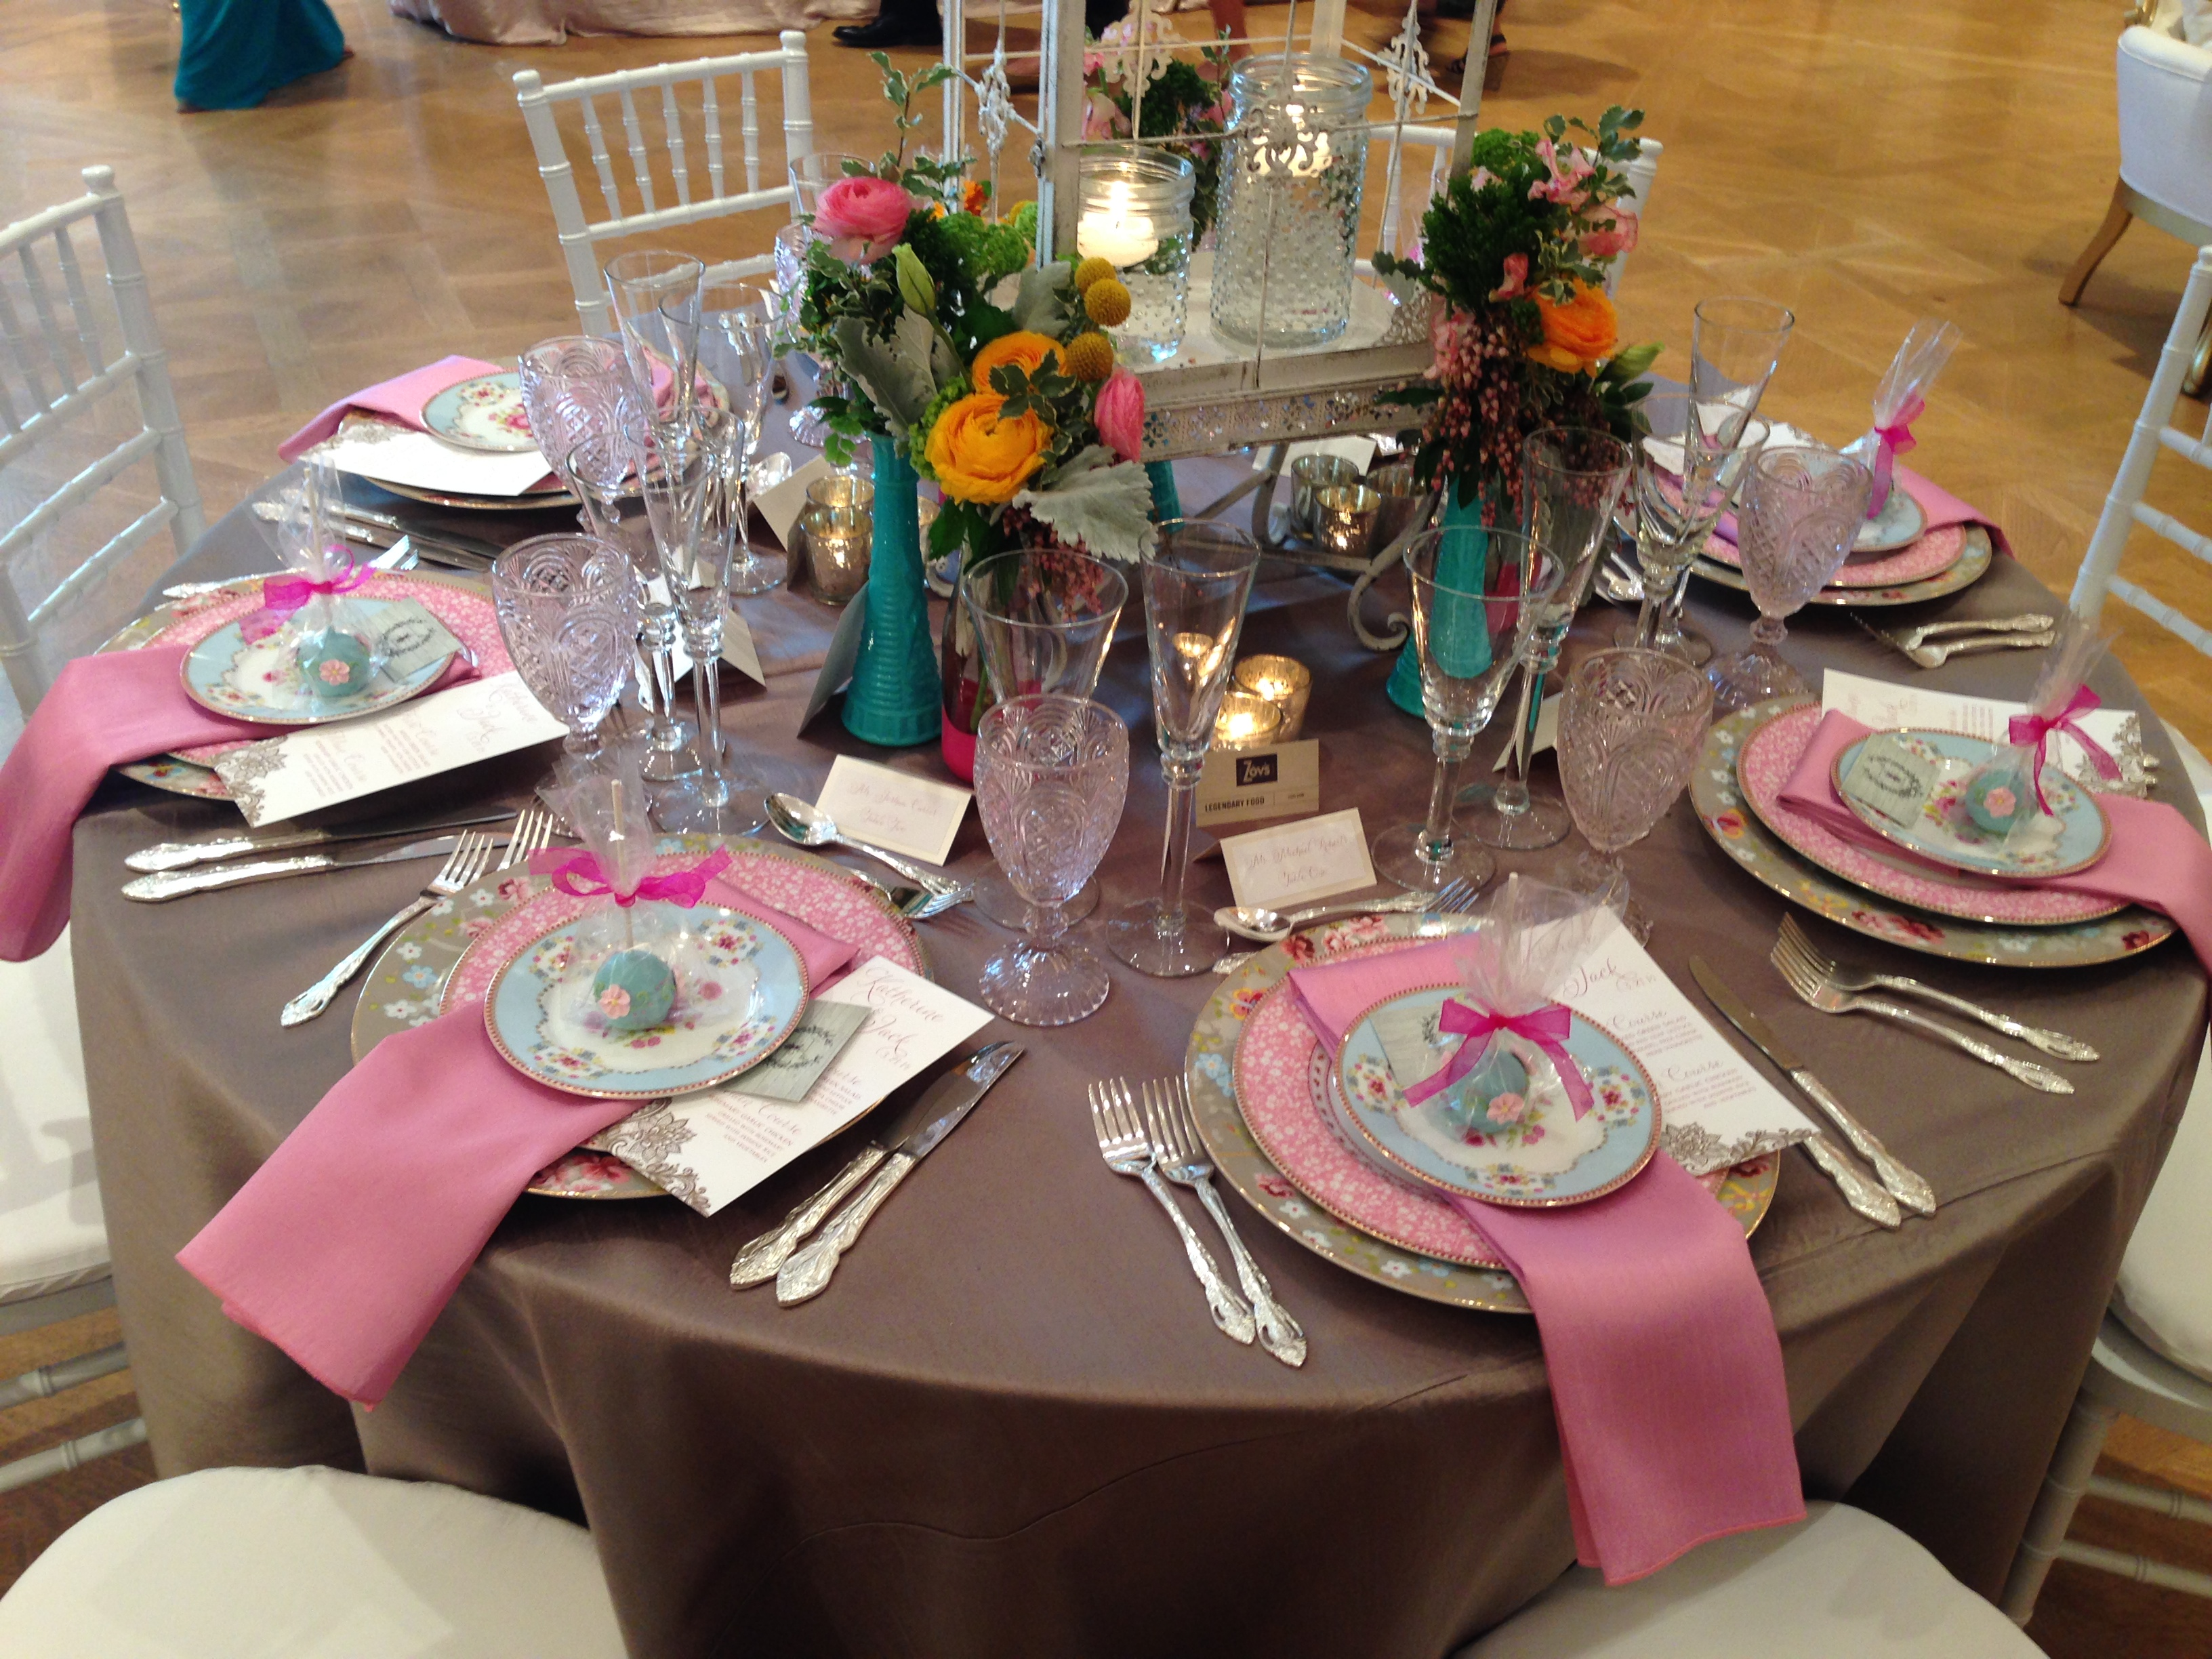 We won't be paying for these elaborate settings and centerpieces. Upon beginning to plan a wedding, you finally learn that little touches like these can quickly act as a budget multiplier!